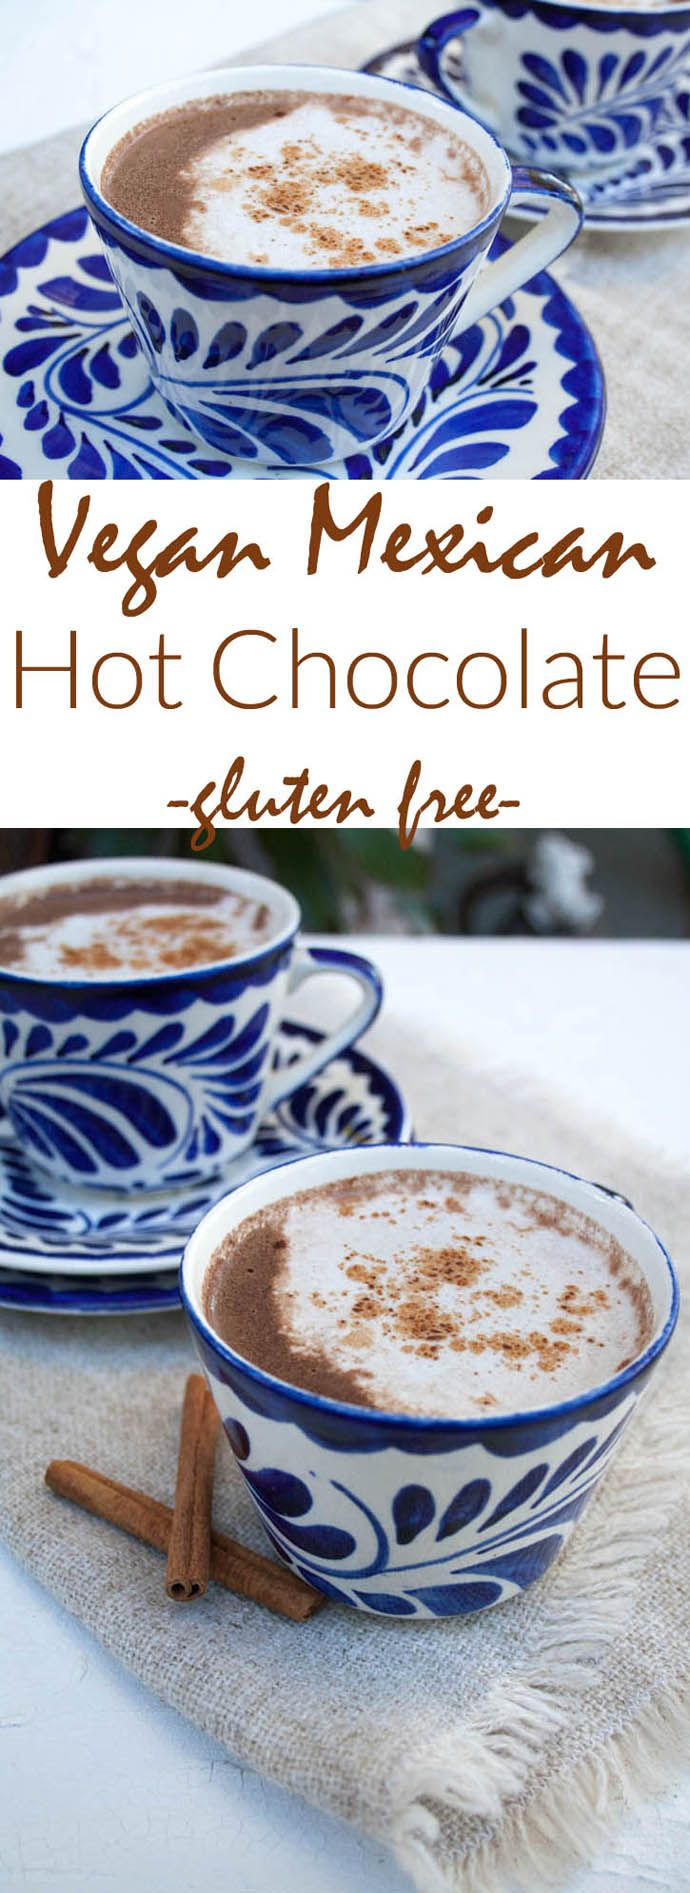 Vegan Mexican Hot Chocolate -